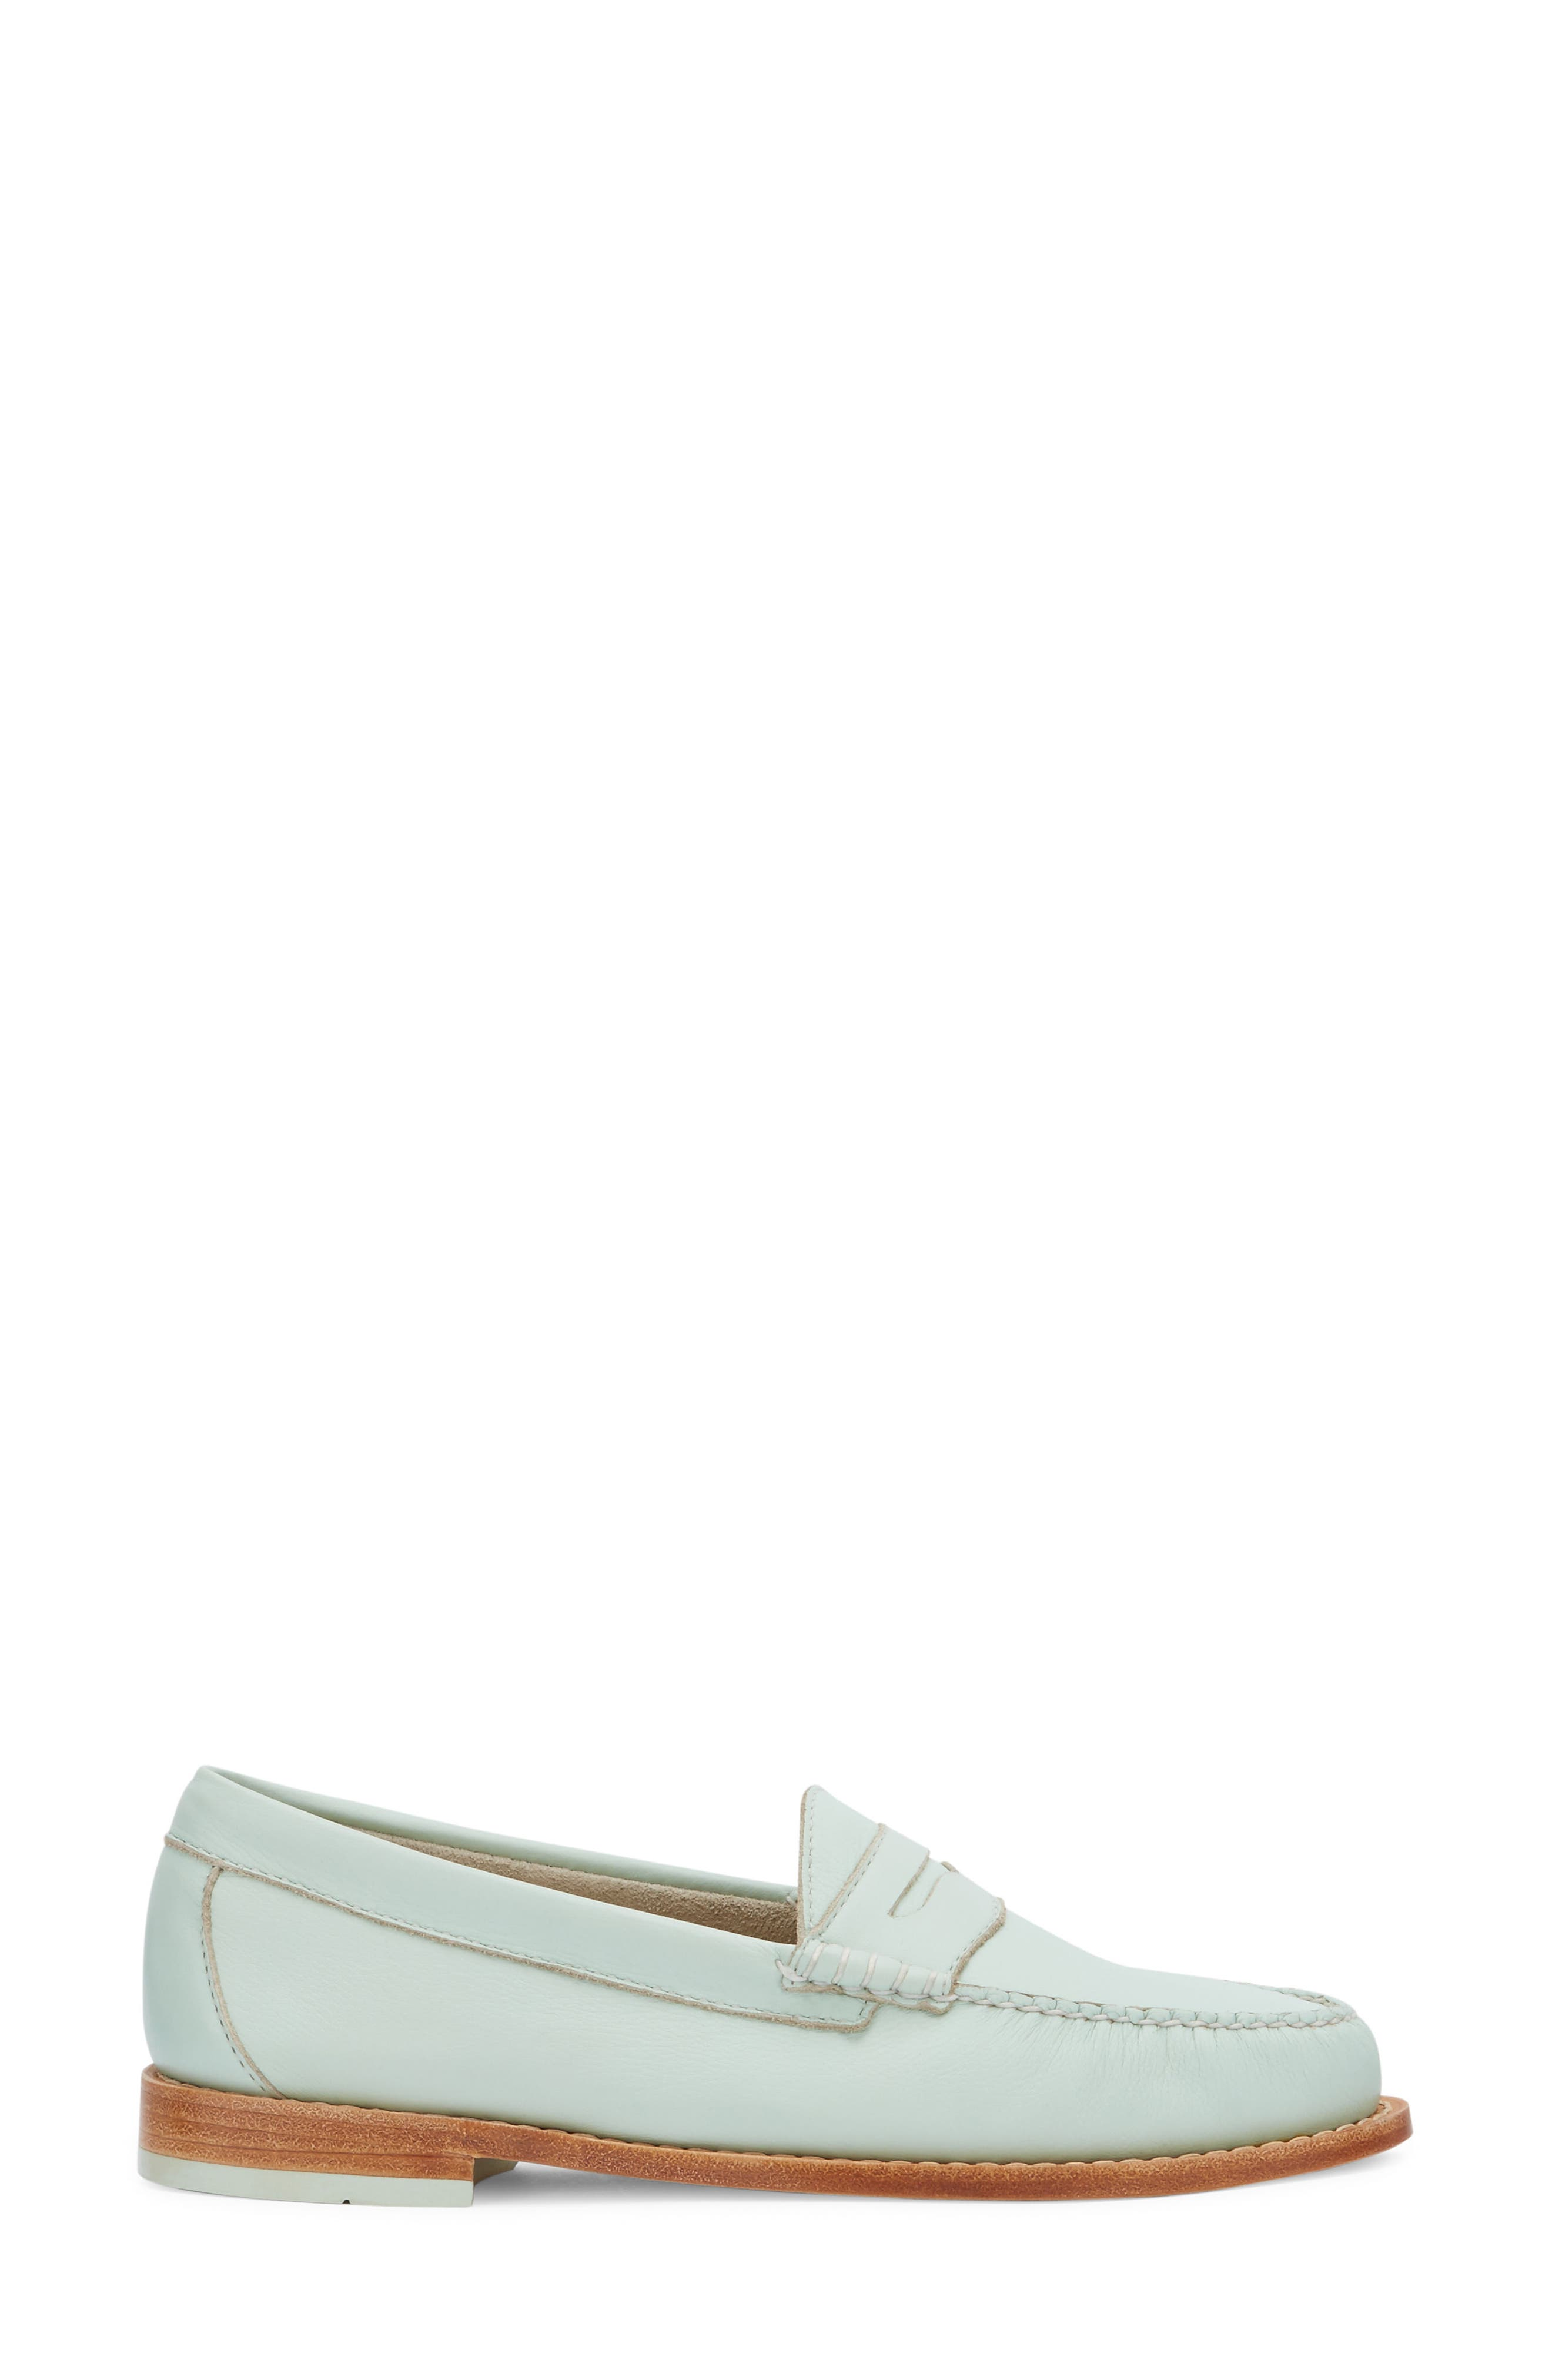 'Whitney' Loafer,                             Alternate thumbnail 3, color,                             MINT GREEN LEATHER